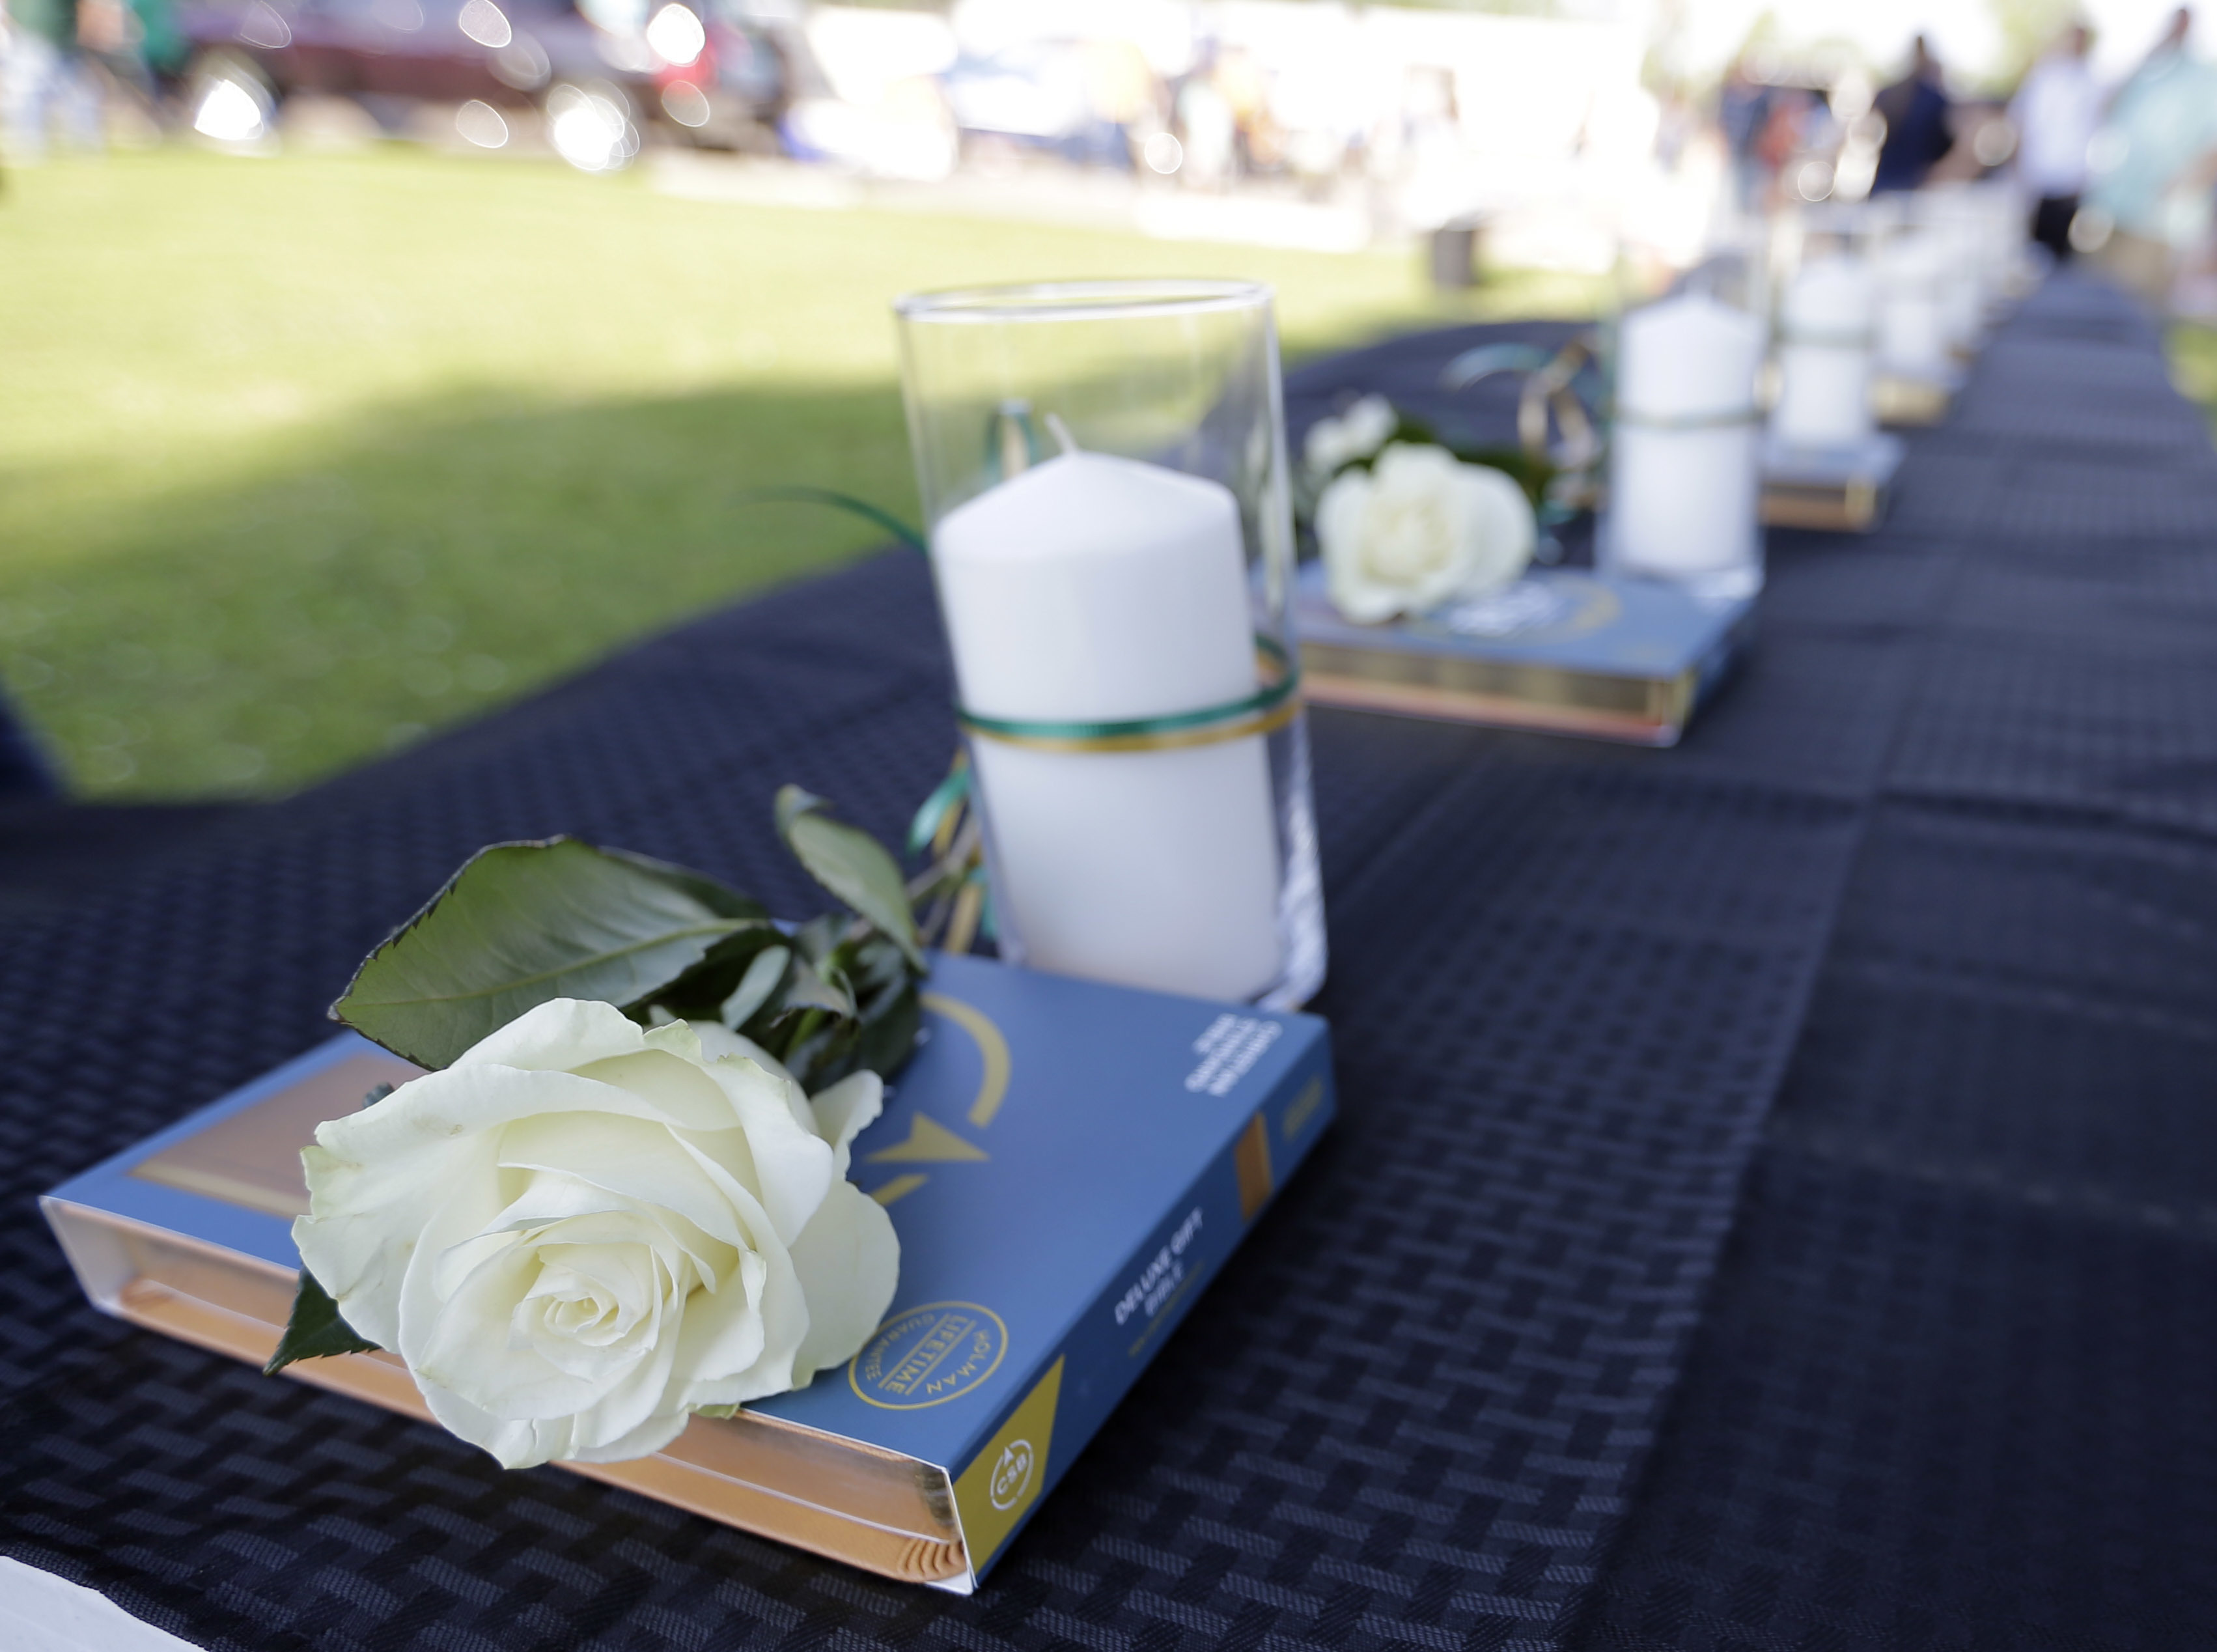 <div class='meta'><div class='origin-logo' data-origin='AP'></div><span class='caption-text' data-credit='AP'>Ten candles, roses and bibles are displayed on a table during a prayer vigil following a shooting at Santa Fe High School.<br> (AP Photo/David J. Phillip)</span></div>